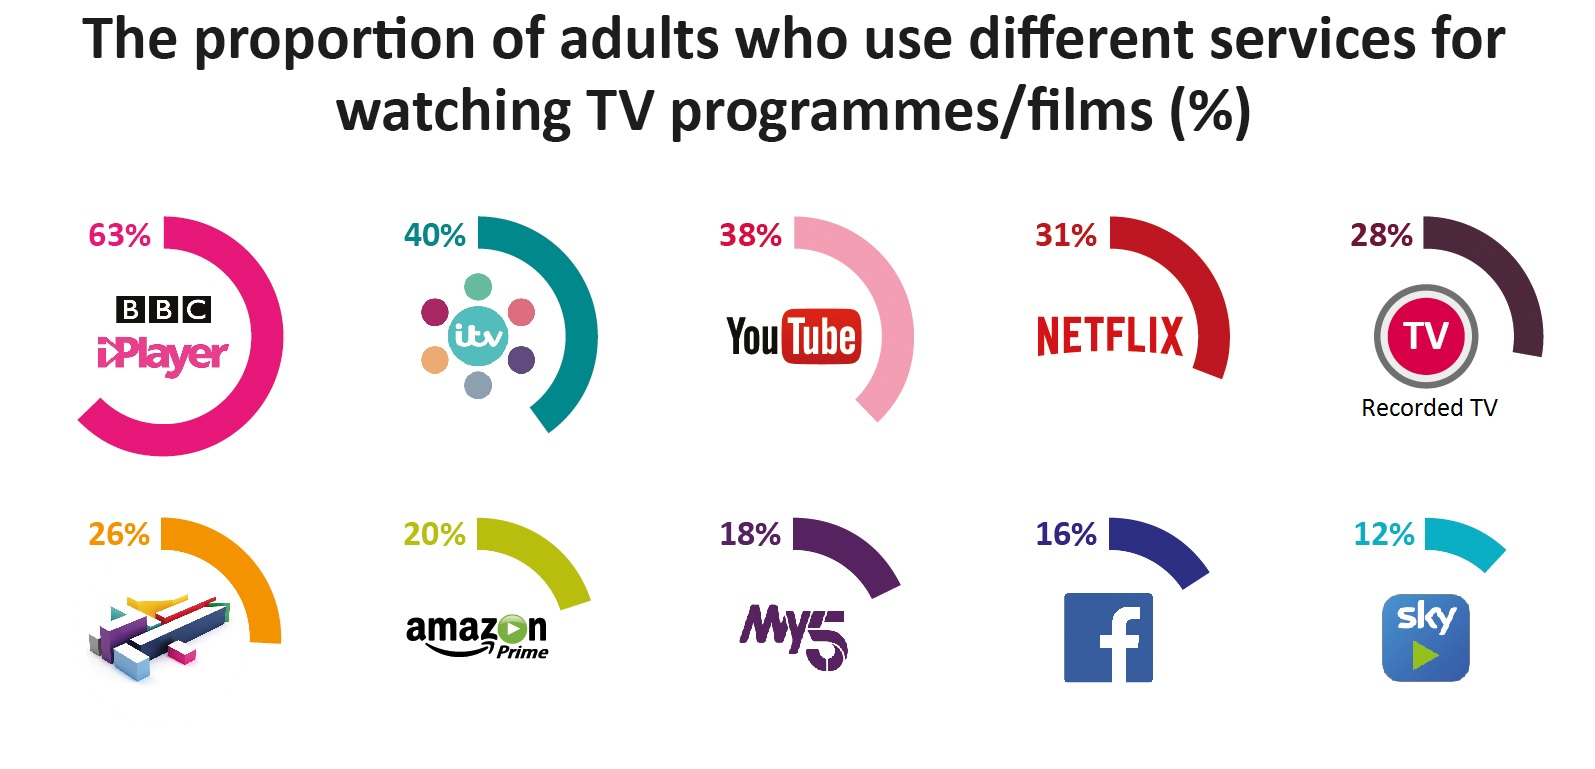 63% of adults in the UK use BBC iPlayer for watching TV programmes/films